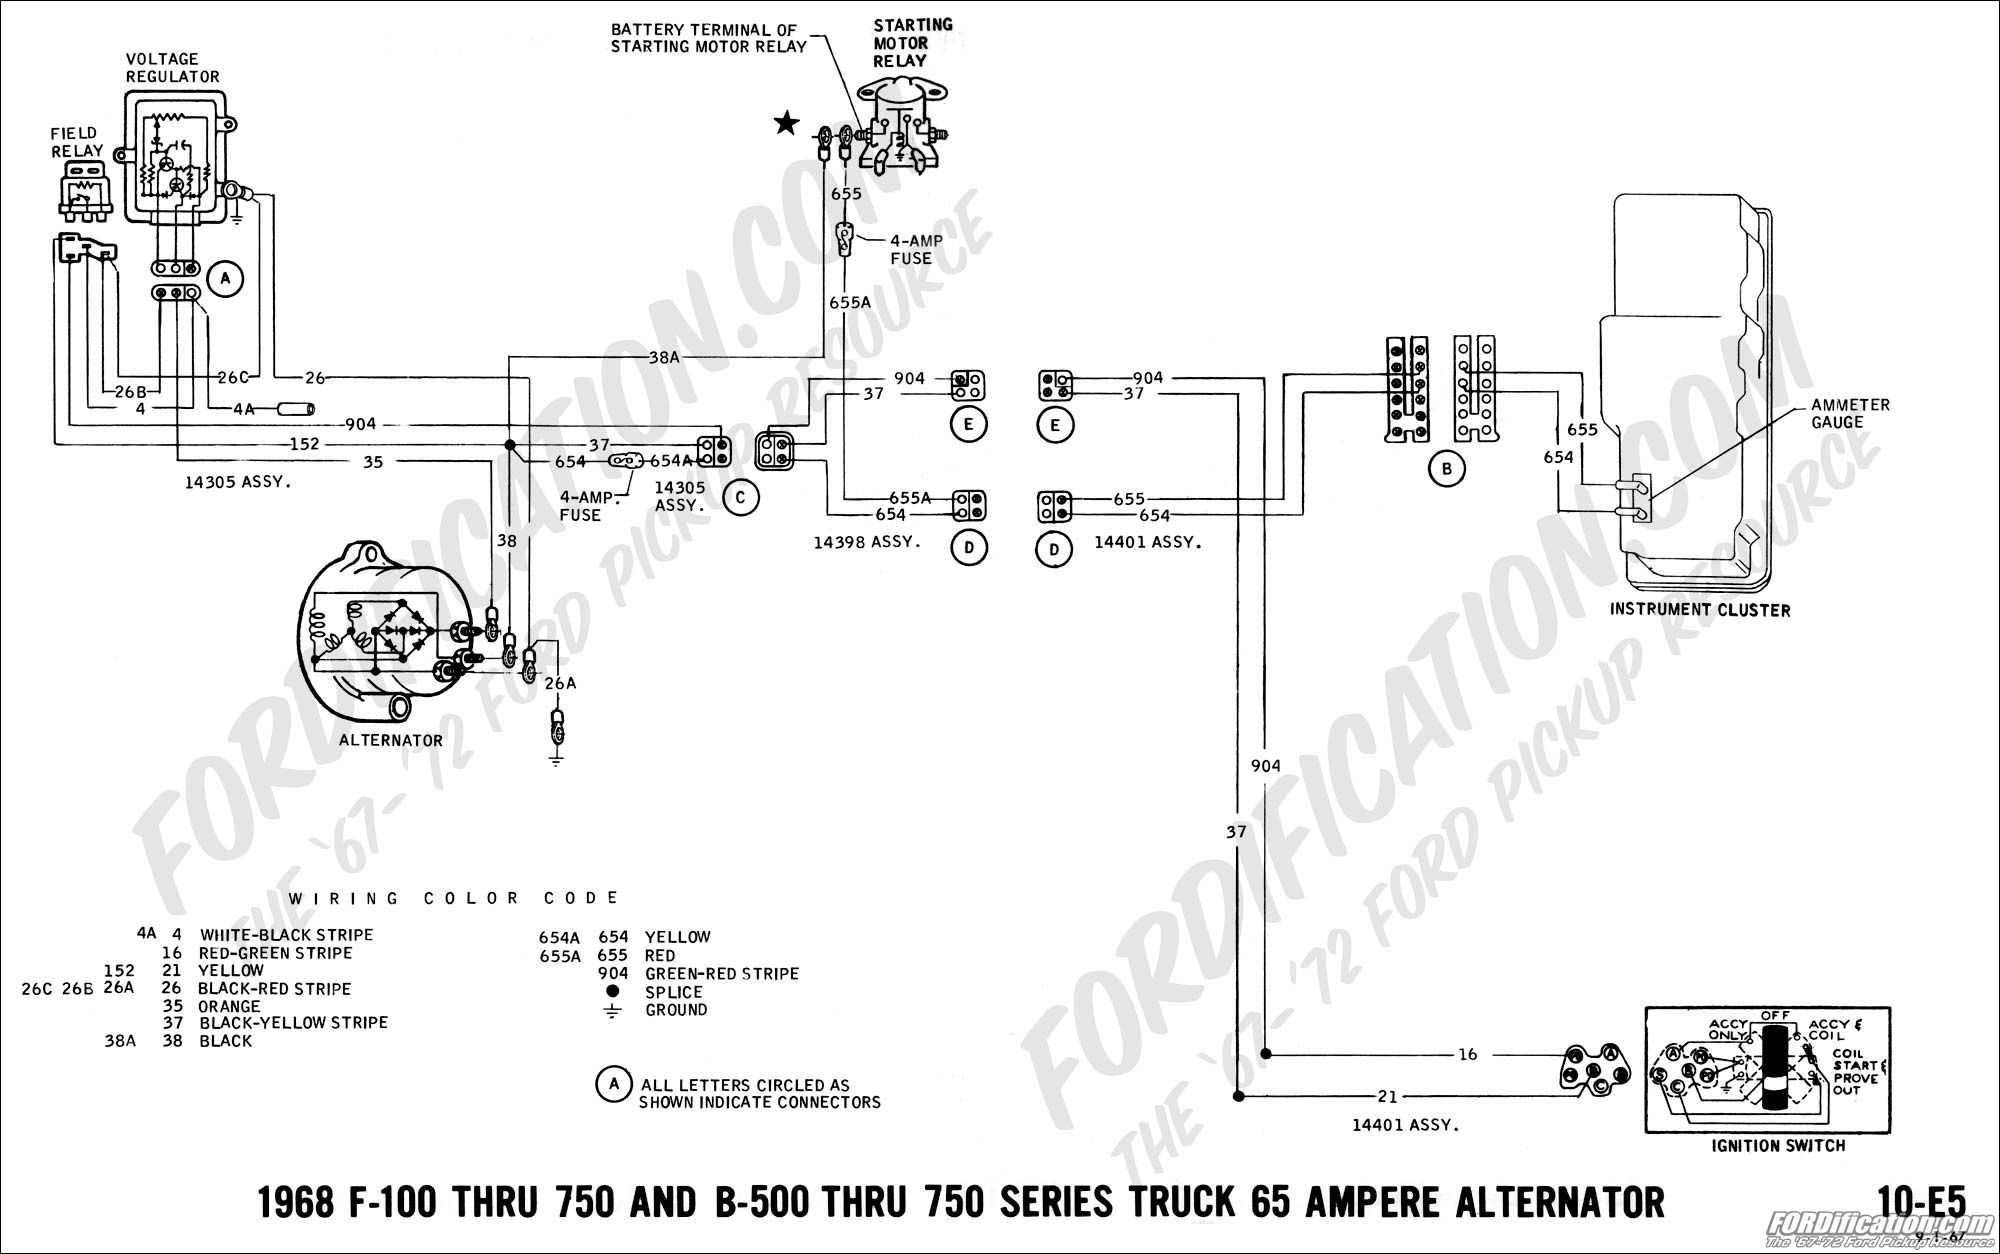 1956 Ford Alternator Wiring Diagram Electrical Diagrams Schematics 1979  Ford F-150 Wiring Diagram 1978 F150 Charging Wiring Diagram